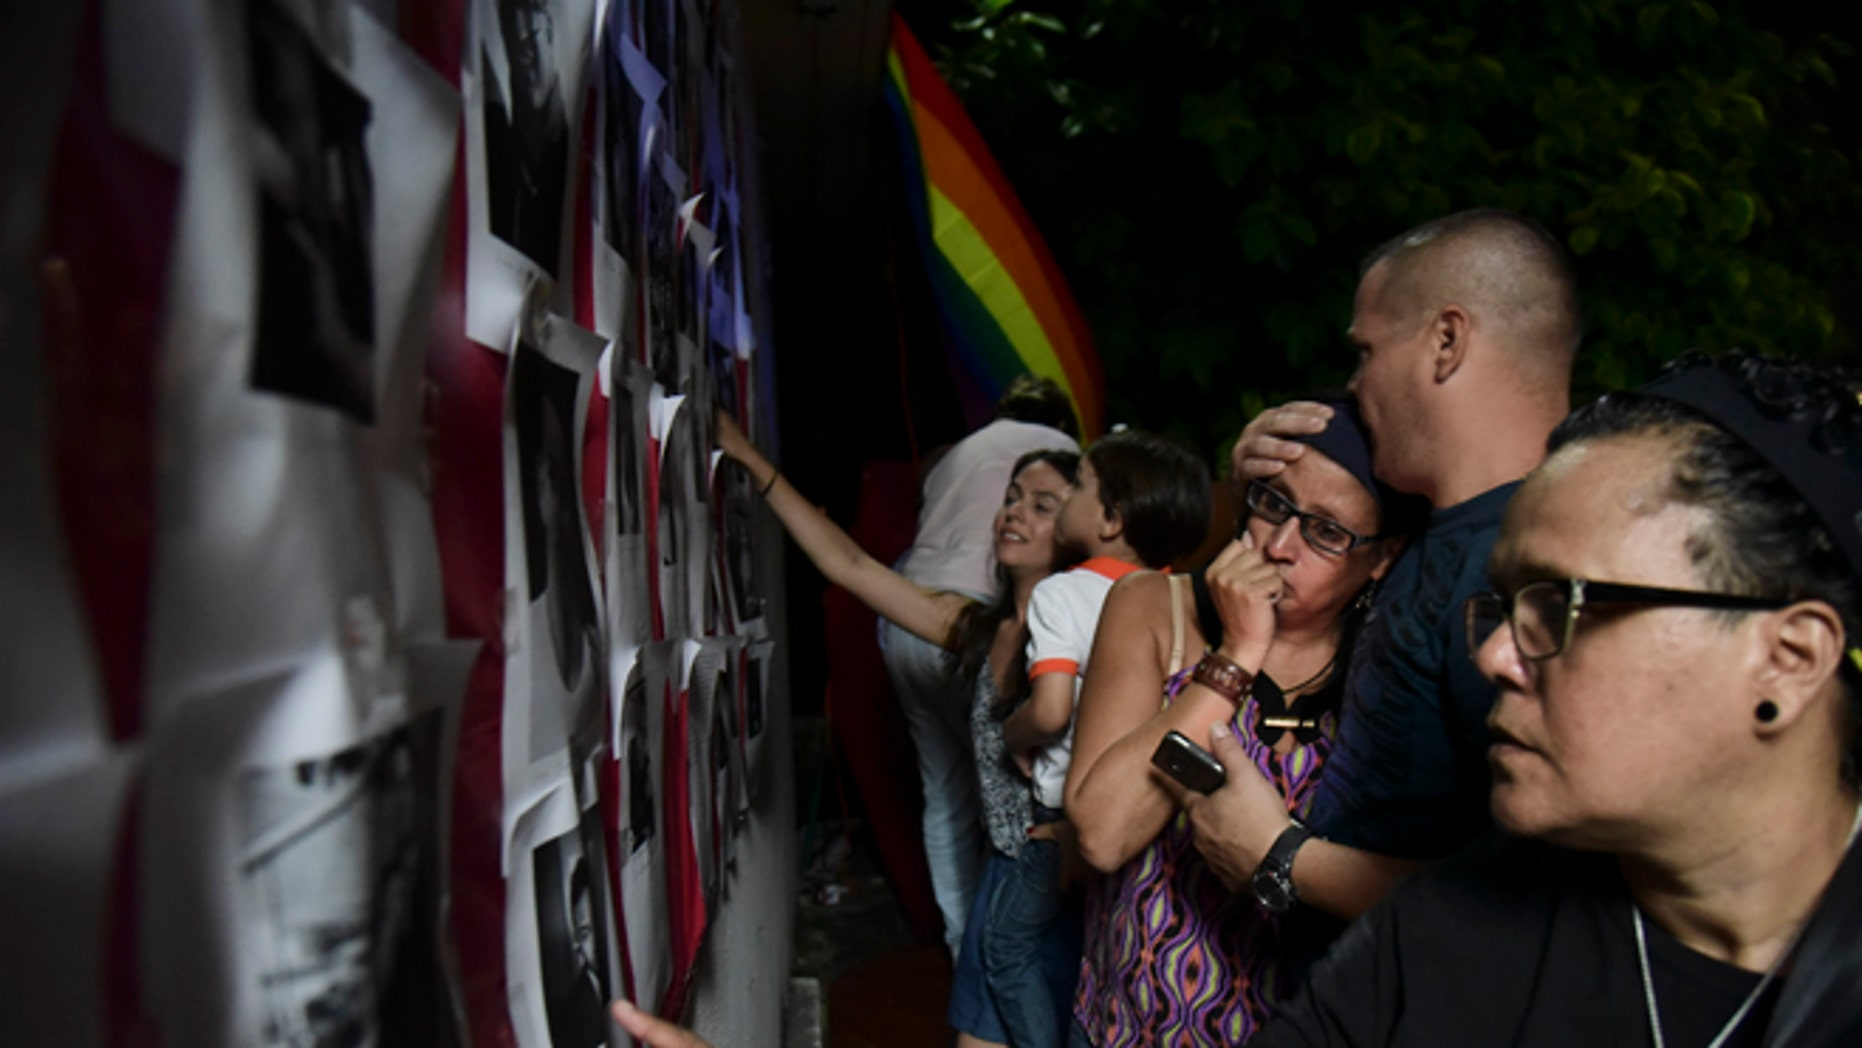 Residents look at photos of the victims during a vigil to honor the memory of the Puerto Ricans that died in the mass shooting at a nightclub in Orlando, Fla., at the Hato Rey LGBTT Community Center in San Juan, Puerto Rico, Tuesday, June 14, 2016. Dozens of people died at the 'Pulse' gay nightclub in Orlando, making it the deadliest mass shooting in modern U.S. history. (AP Photo/Carlos Giusti)